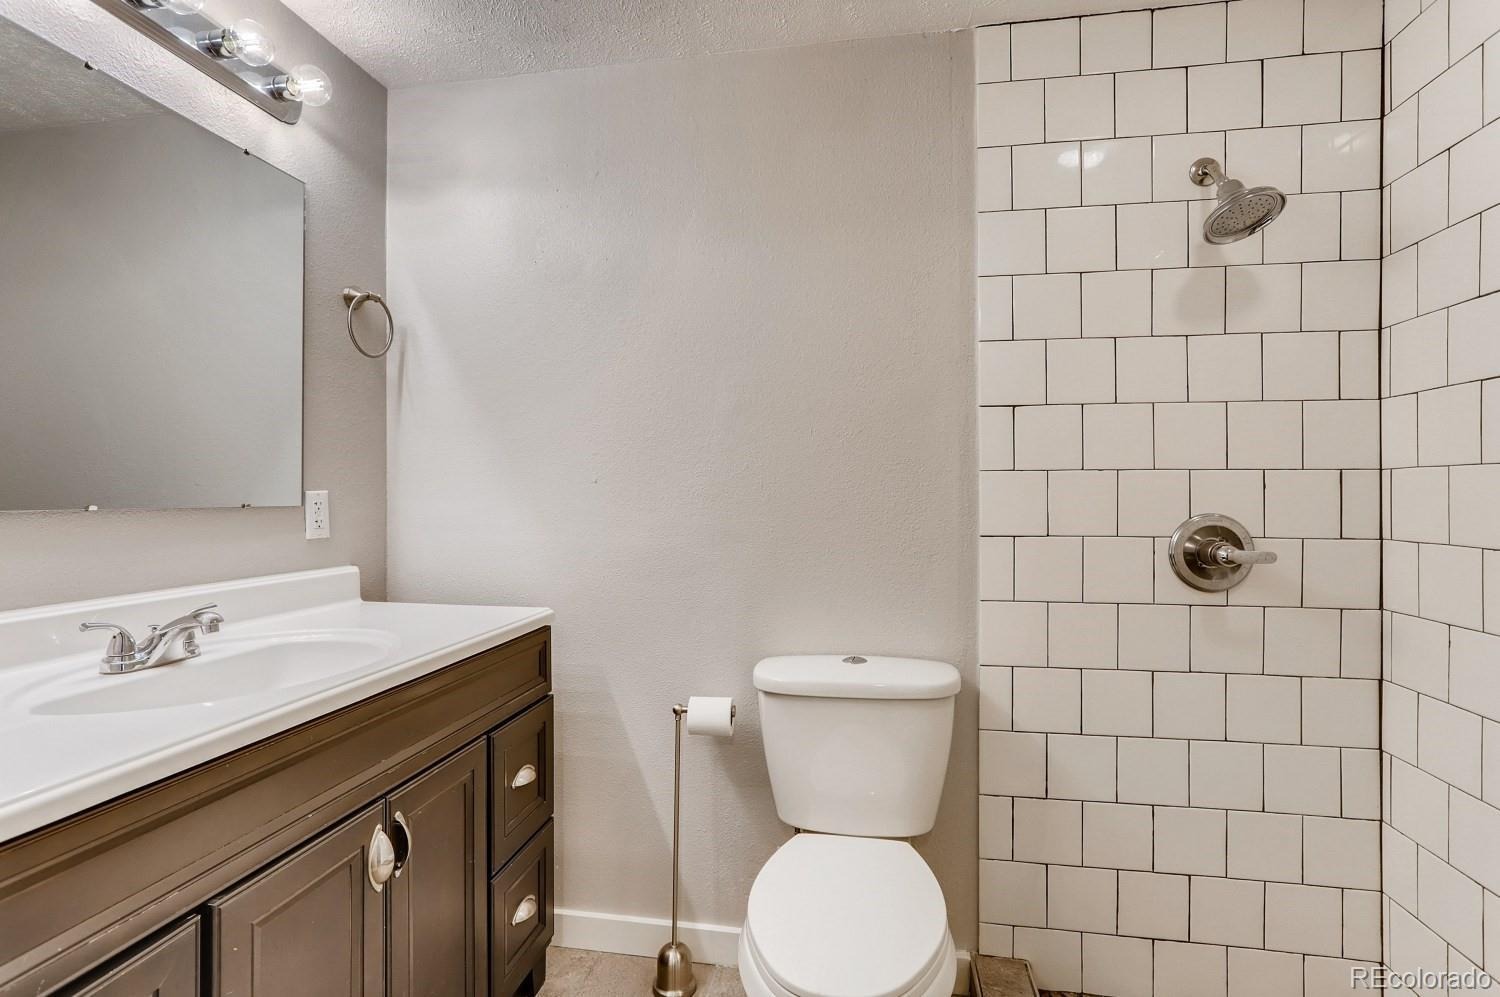 UNDER CONTRACT: Charming Westminster Home on a Cul-De-Sac preview